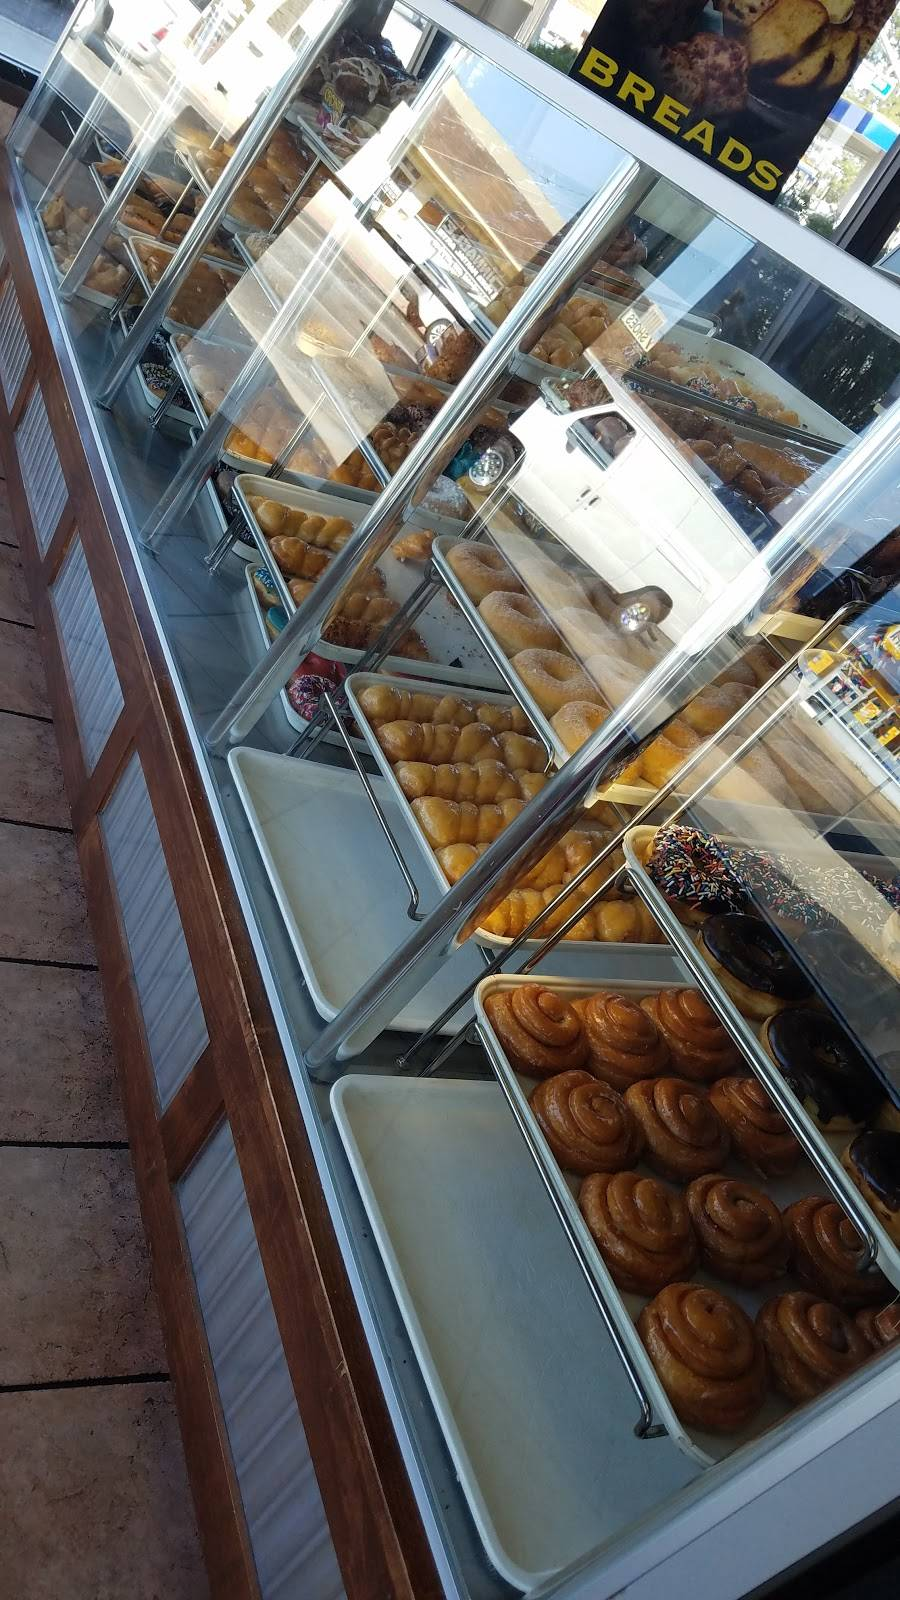 Yum Yum Donuts | bakery | 380 E 6th St, Beaumont, CA 92223, USA | 9518459069 OR +1 951-845-9069